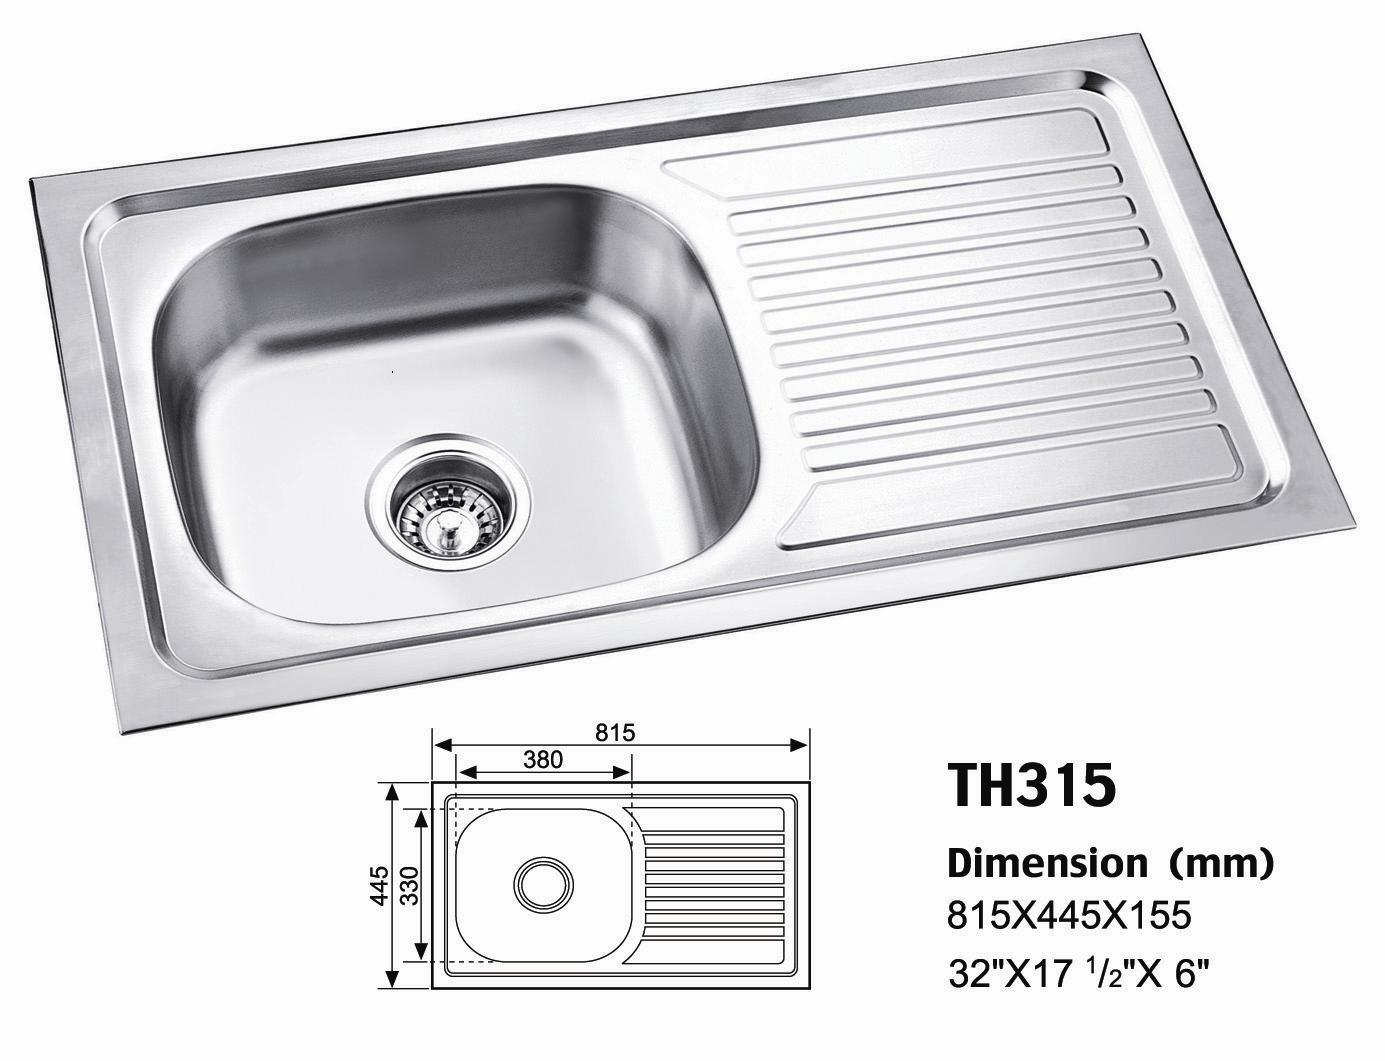 Kitchen Stainless Steel Sinks : China Stainless Steel Sink (TH315) - China Kitchen Sinks, Sinks